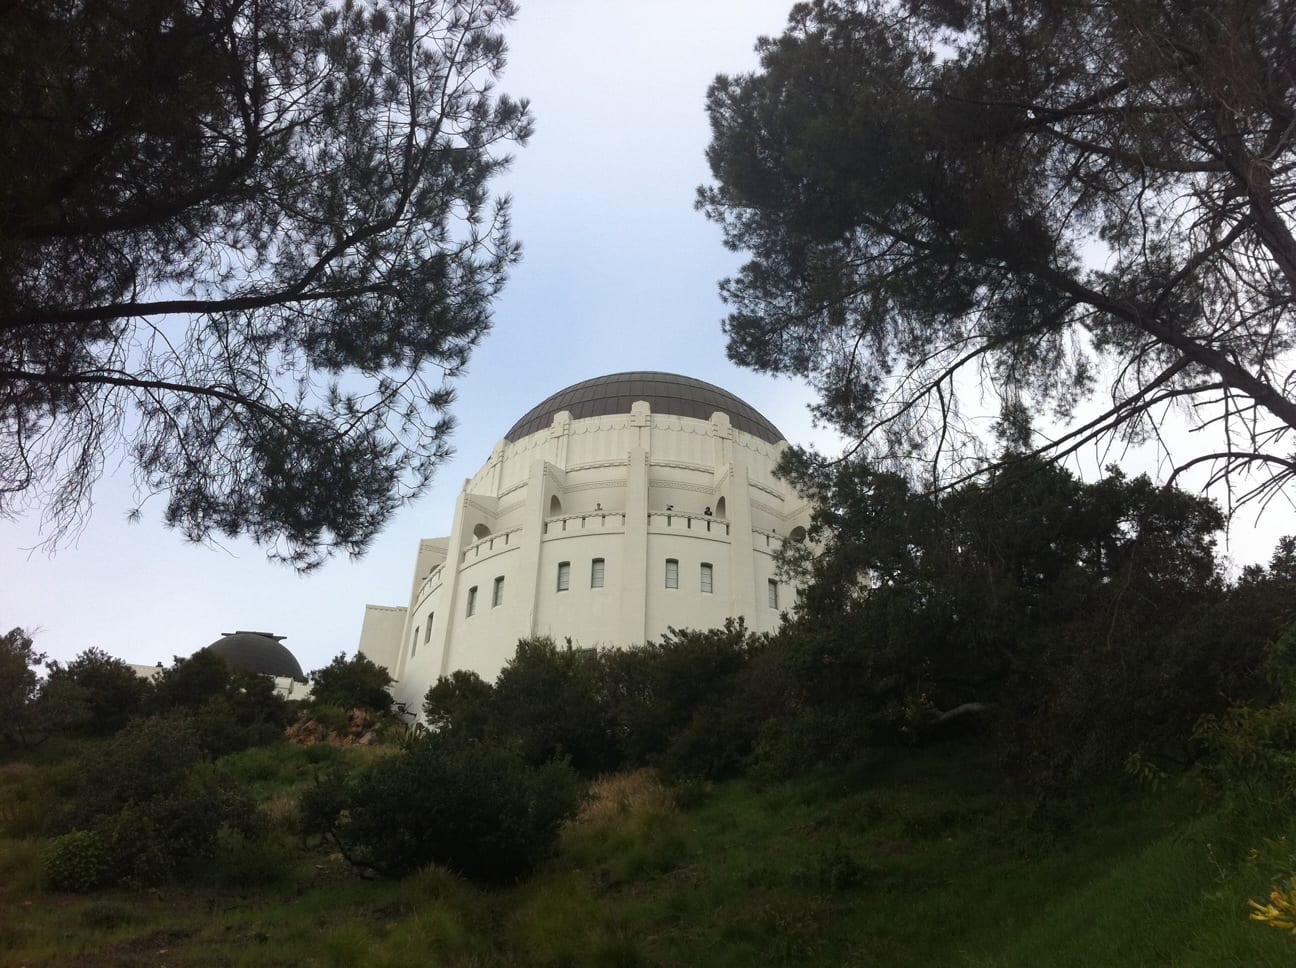 The Griffith Park Observatory seen from the trail.